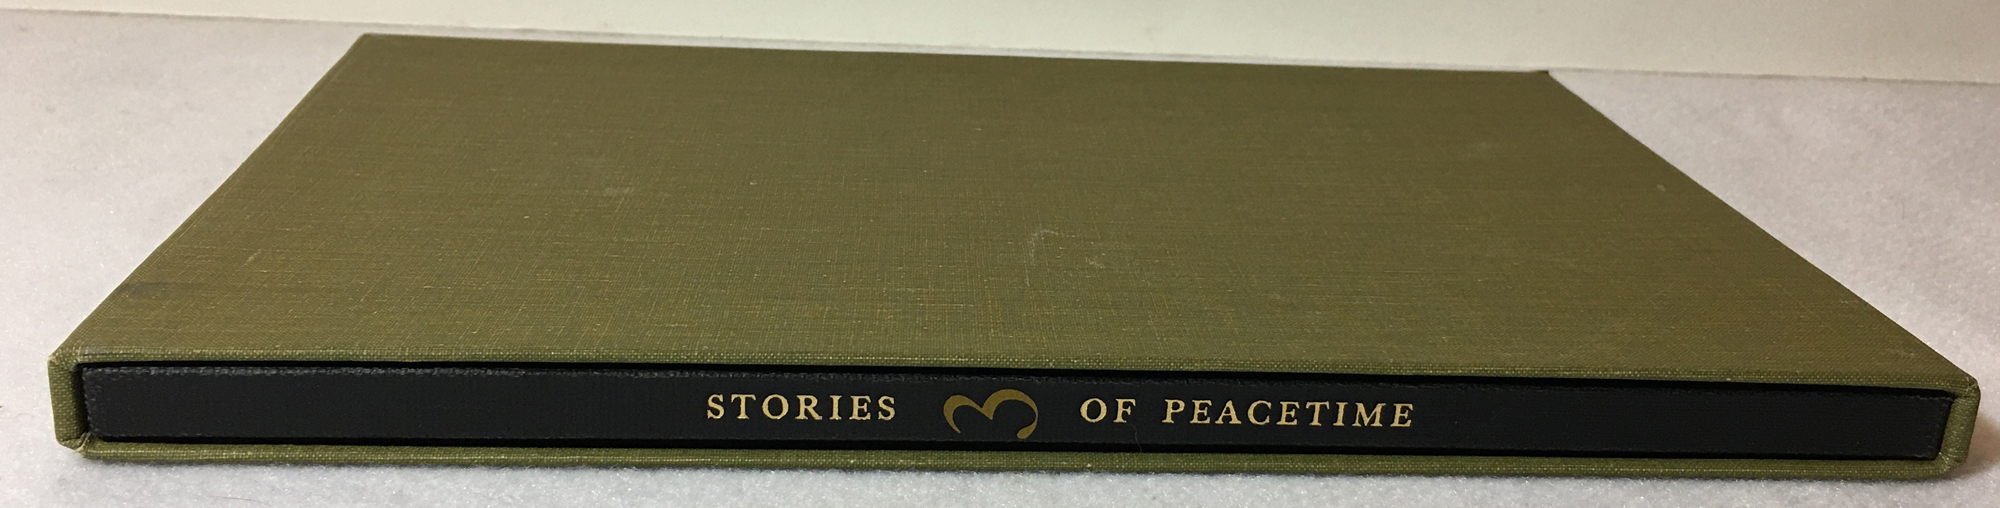 Image for 3 Stories of Peacetime